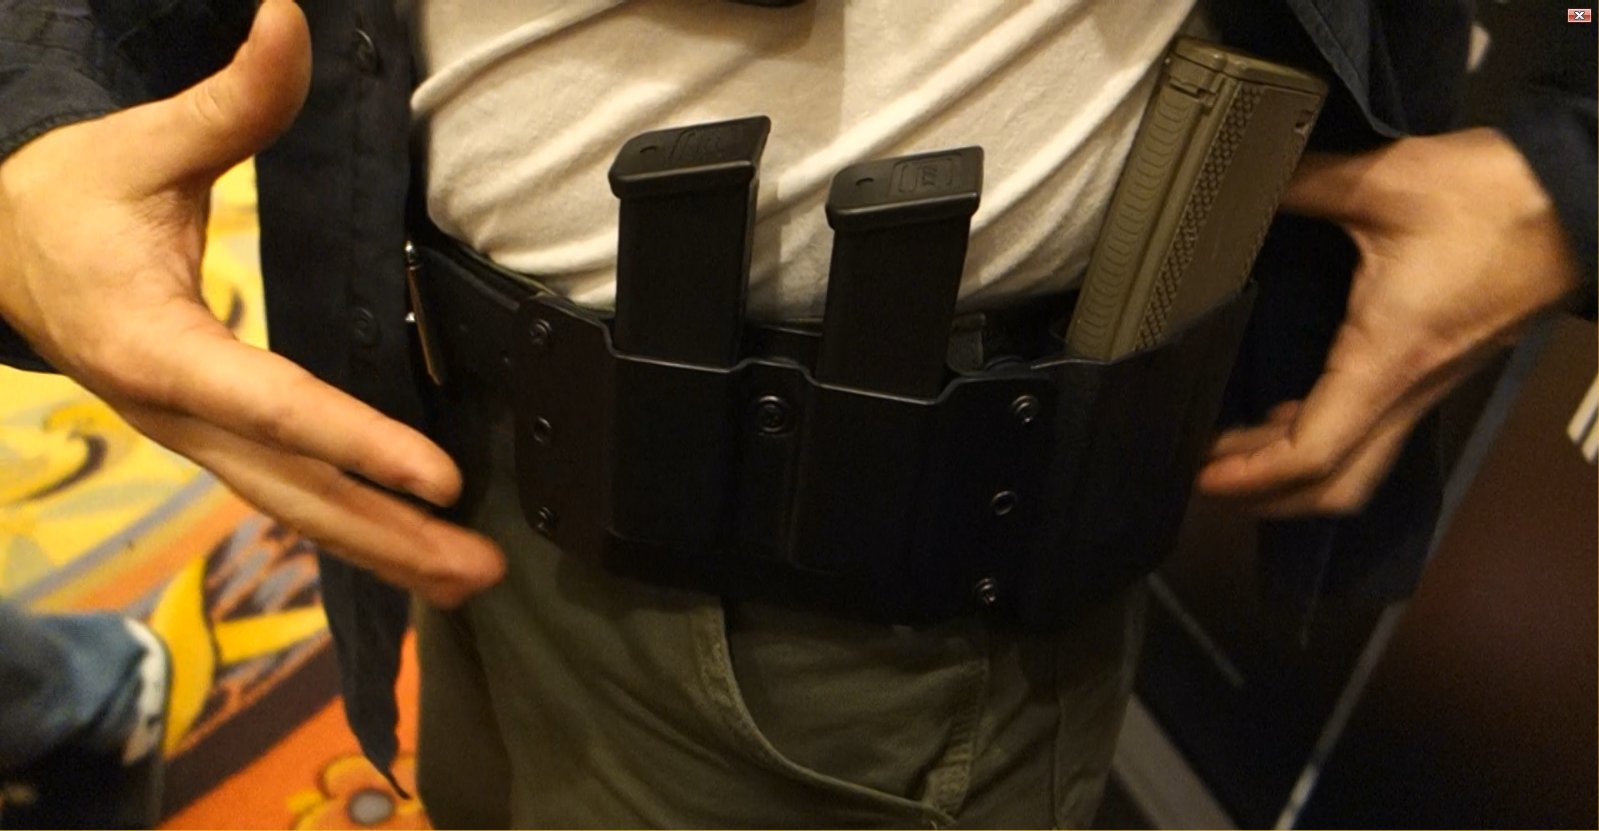 High Threat Concealment HTC Low Profile System LPS Modular Gunfighting Belt Carrier System Tactical Gun Belt David Crane DefenseReview.com DR 3 High Threat Concealment HTC Low Profile System (LPS) Modular Gunfighting Belt/Carrier System for Lo Pro/Lo Vis Tactical Ops! (Video!)